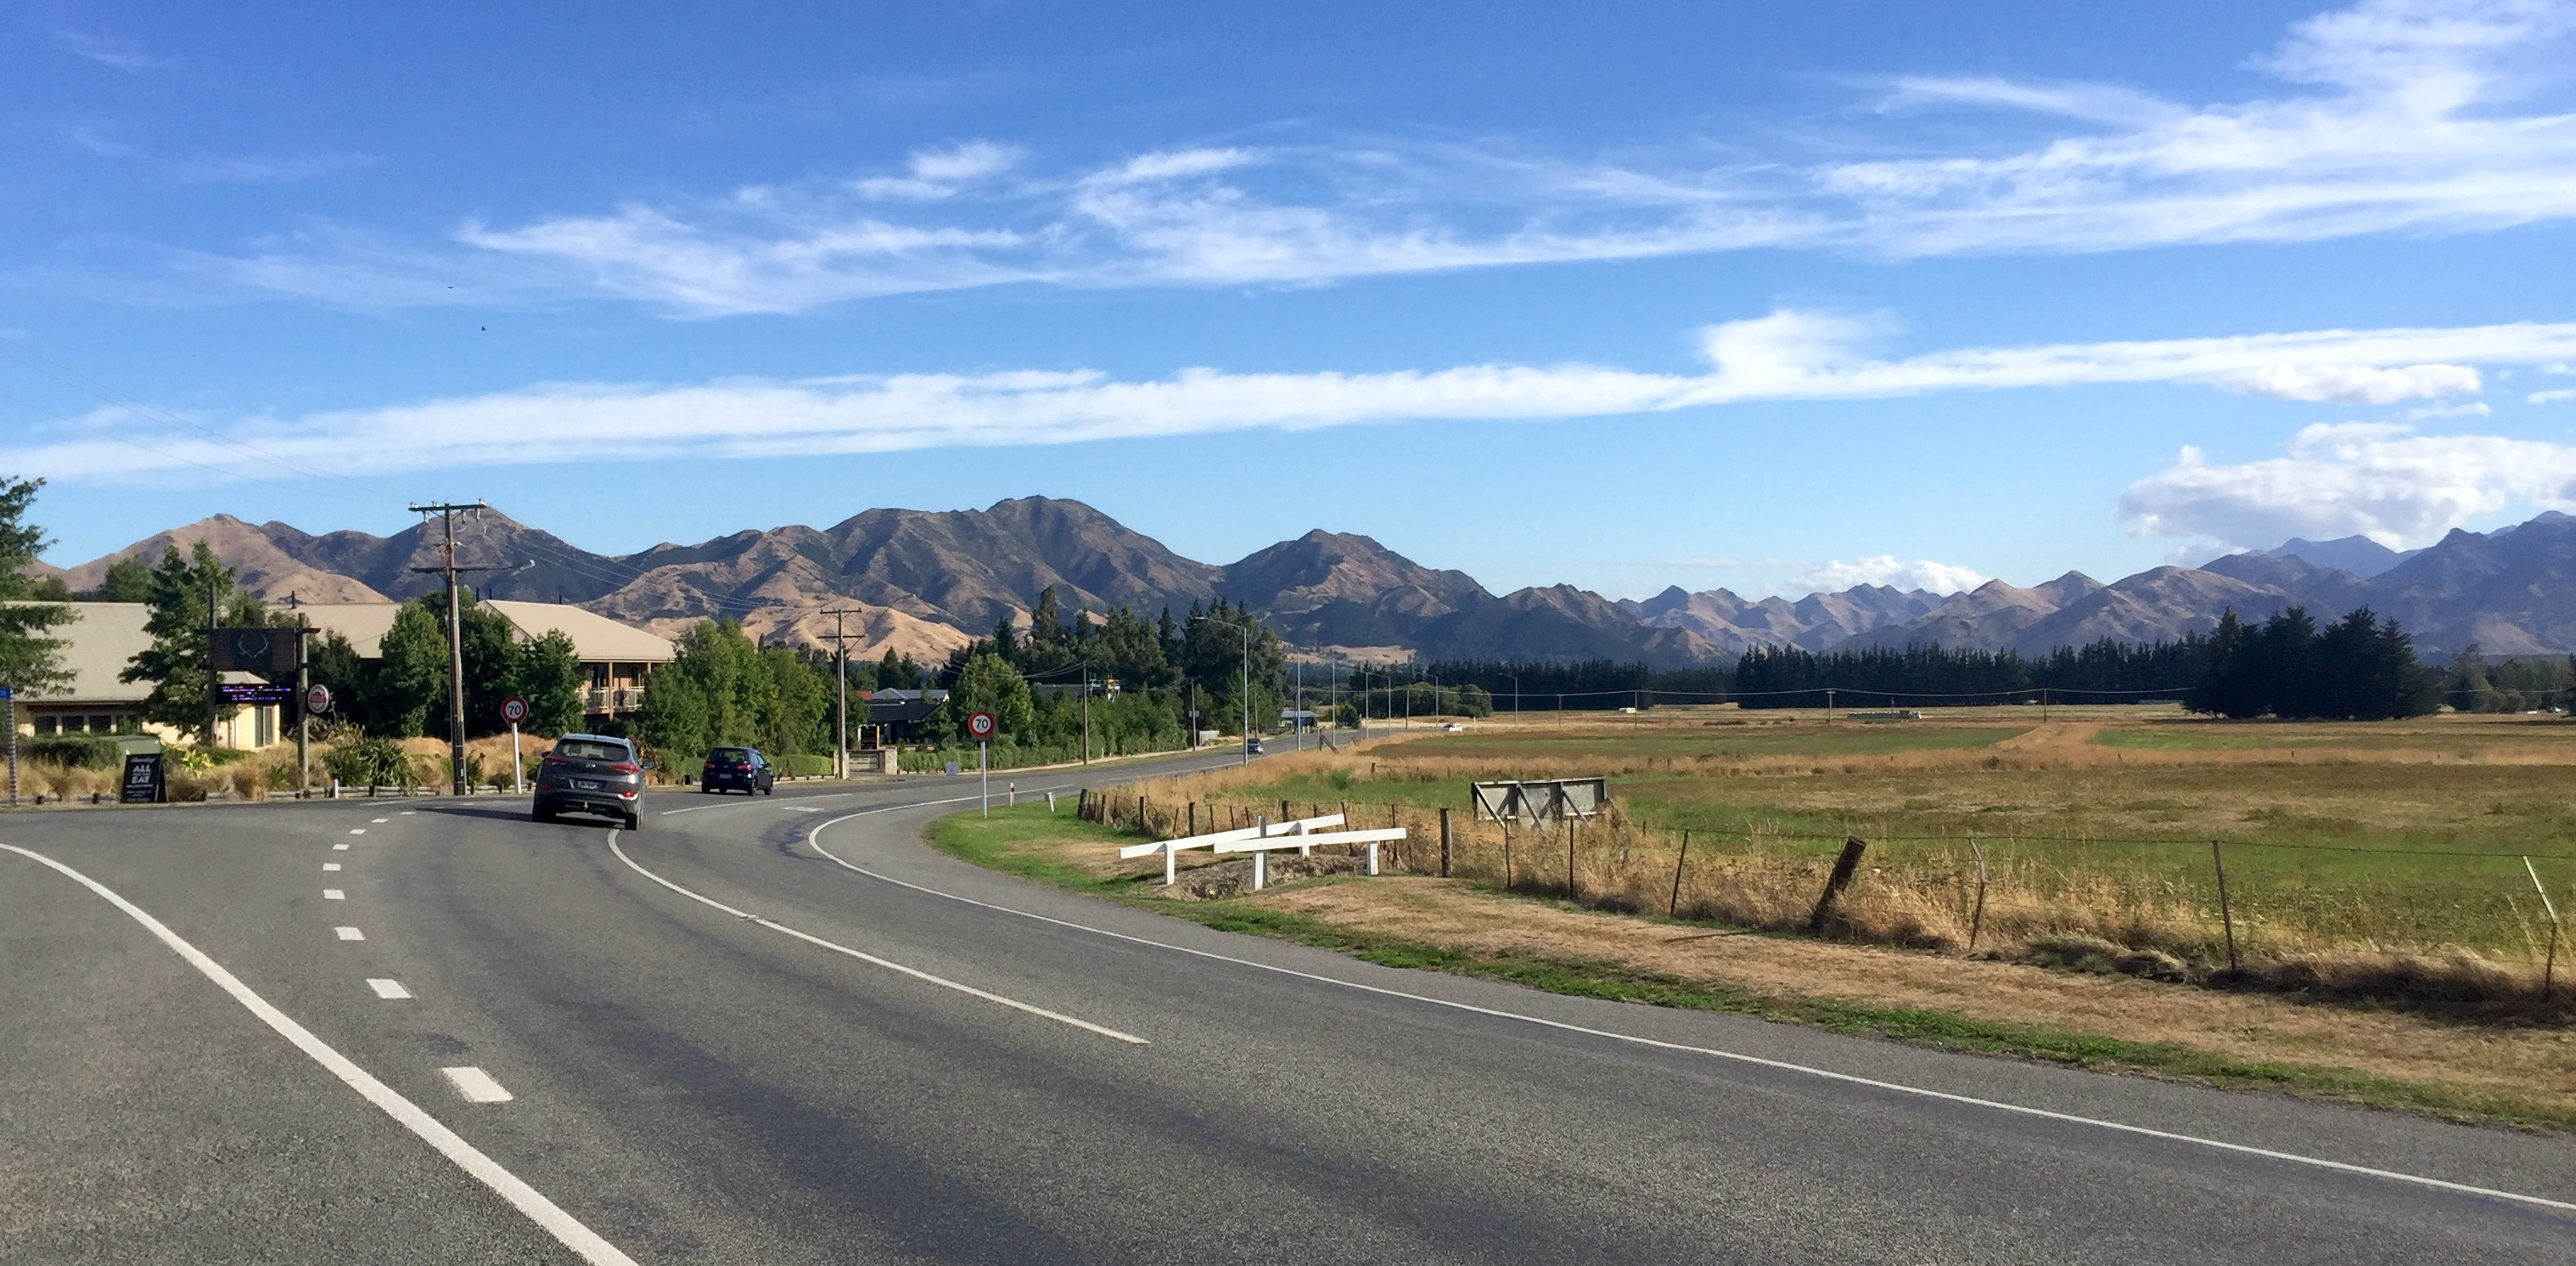 Hanmer Springs is surrounded by mountains.